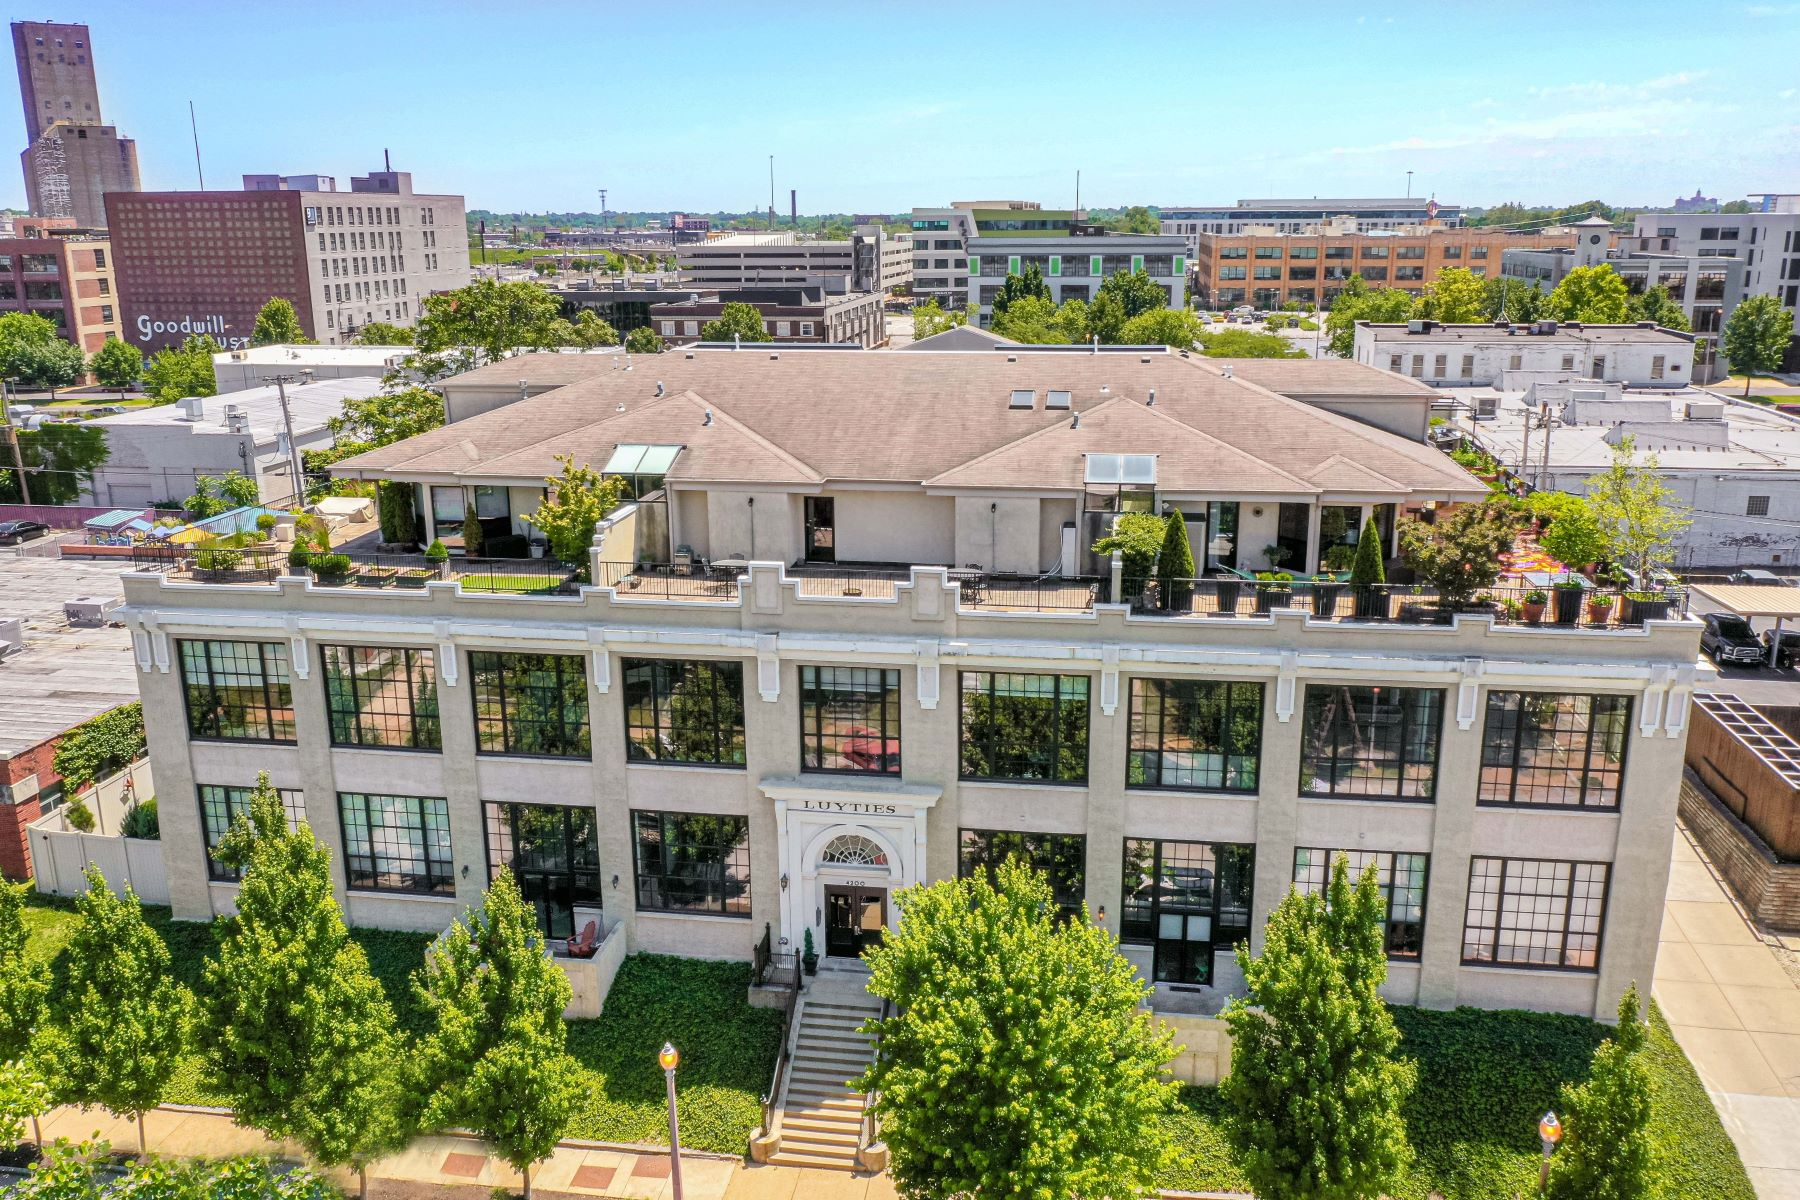 Condominiums for Sale at Two-story loft condo in the Central West End 4200 Laclede Avenue #201 St. Louis, Missouri 63108 United States